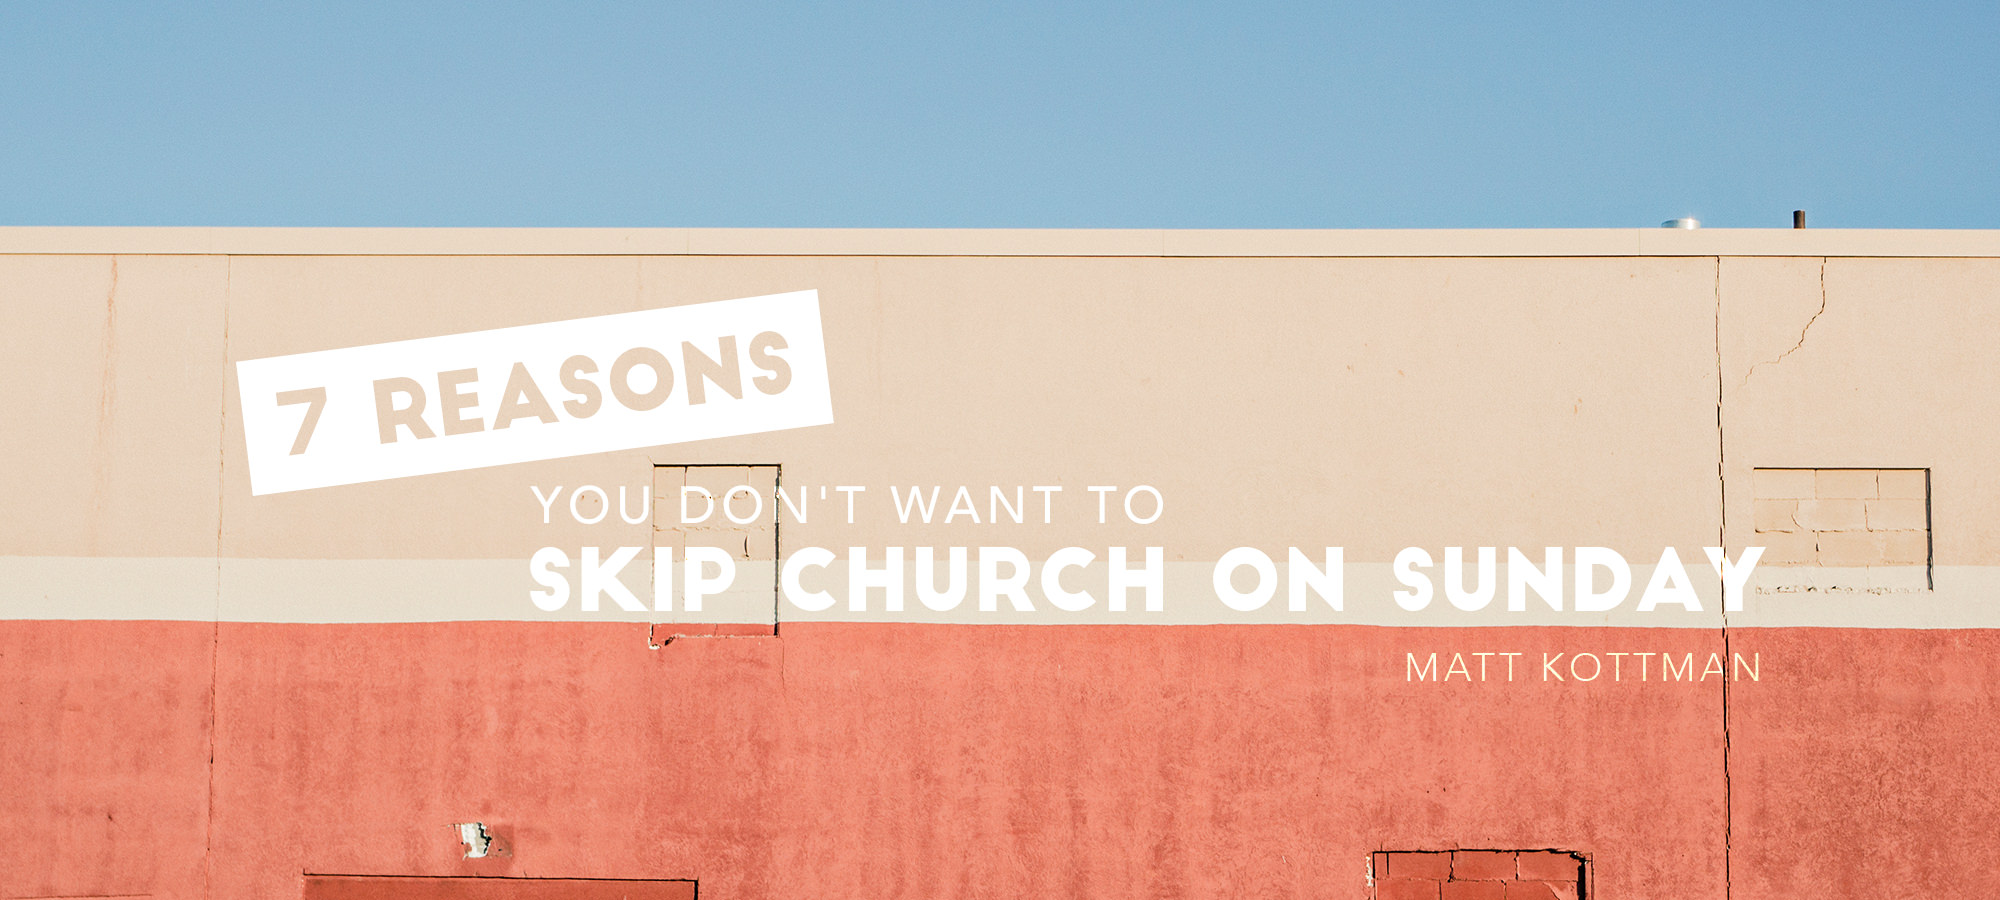 7 Reasons You Don't Want to Skip Church on Sunday